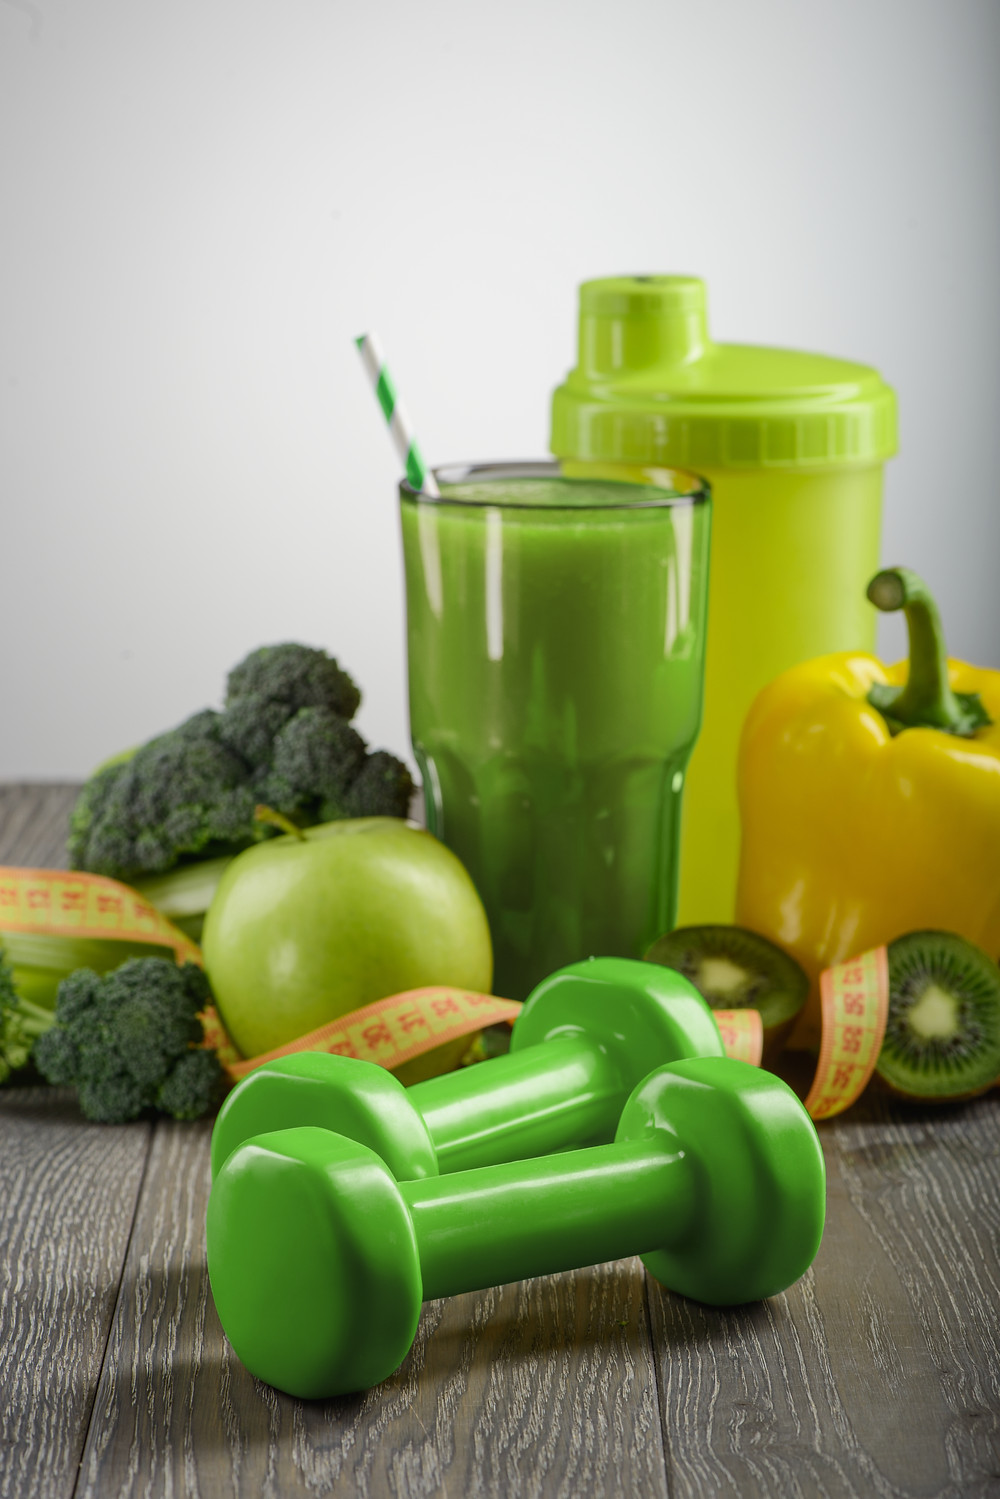 Weights and healthy food as a healthy habit.